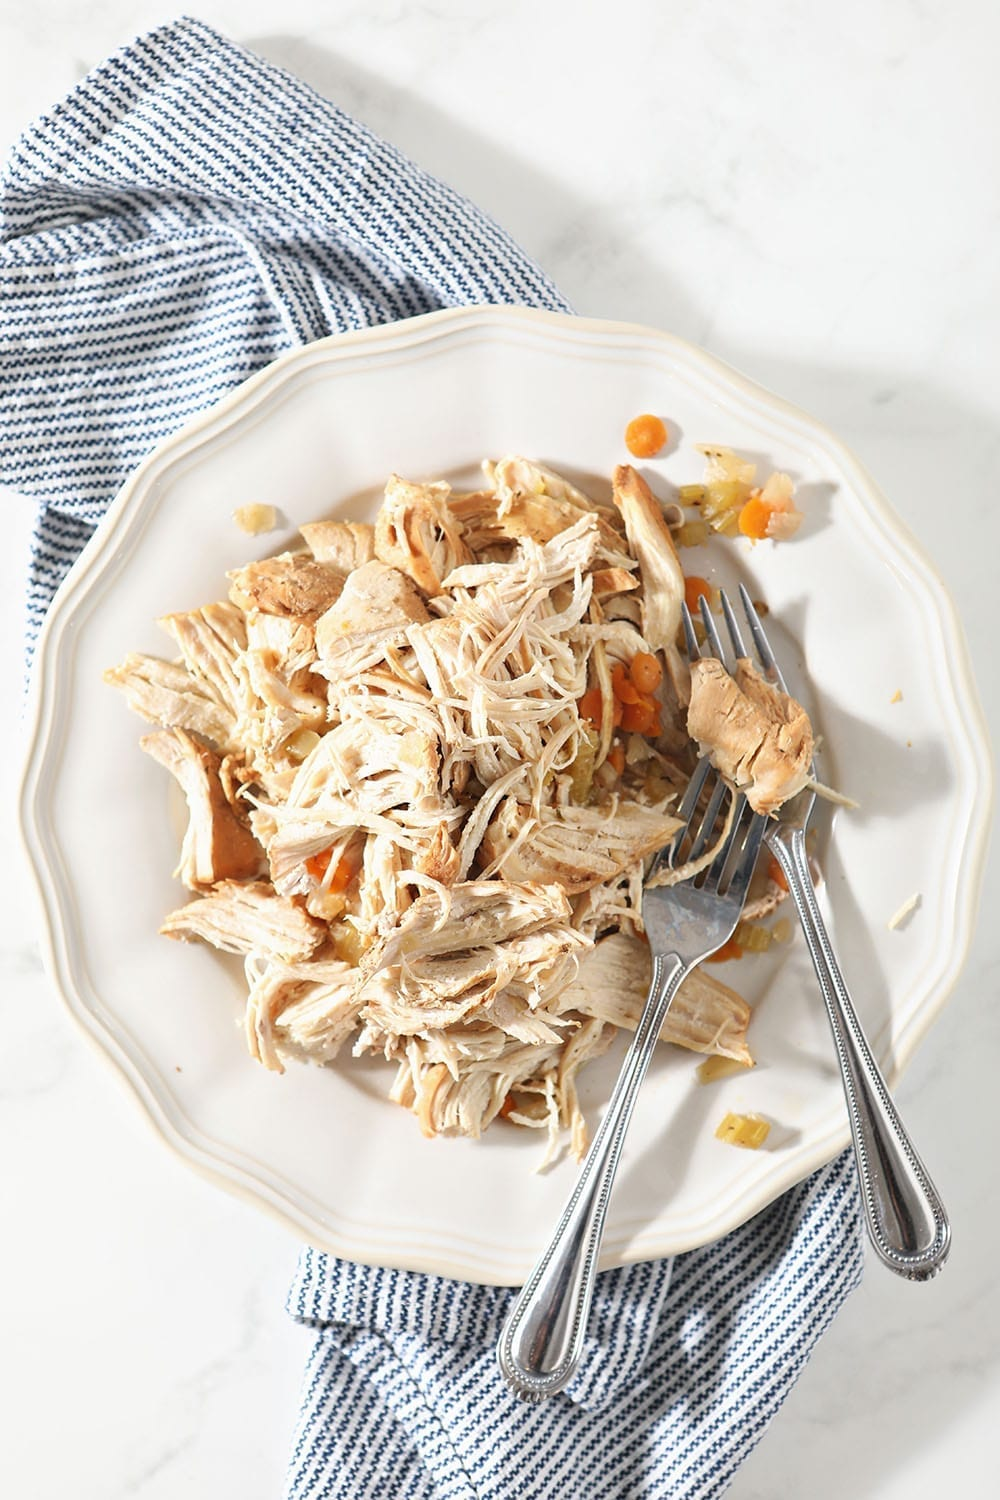 Shredded chicken is shown on a white plate with forks